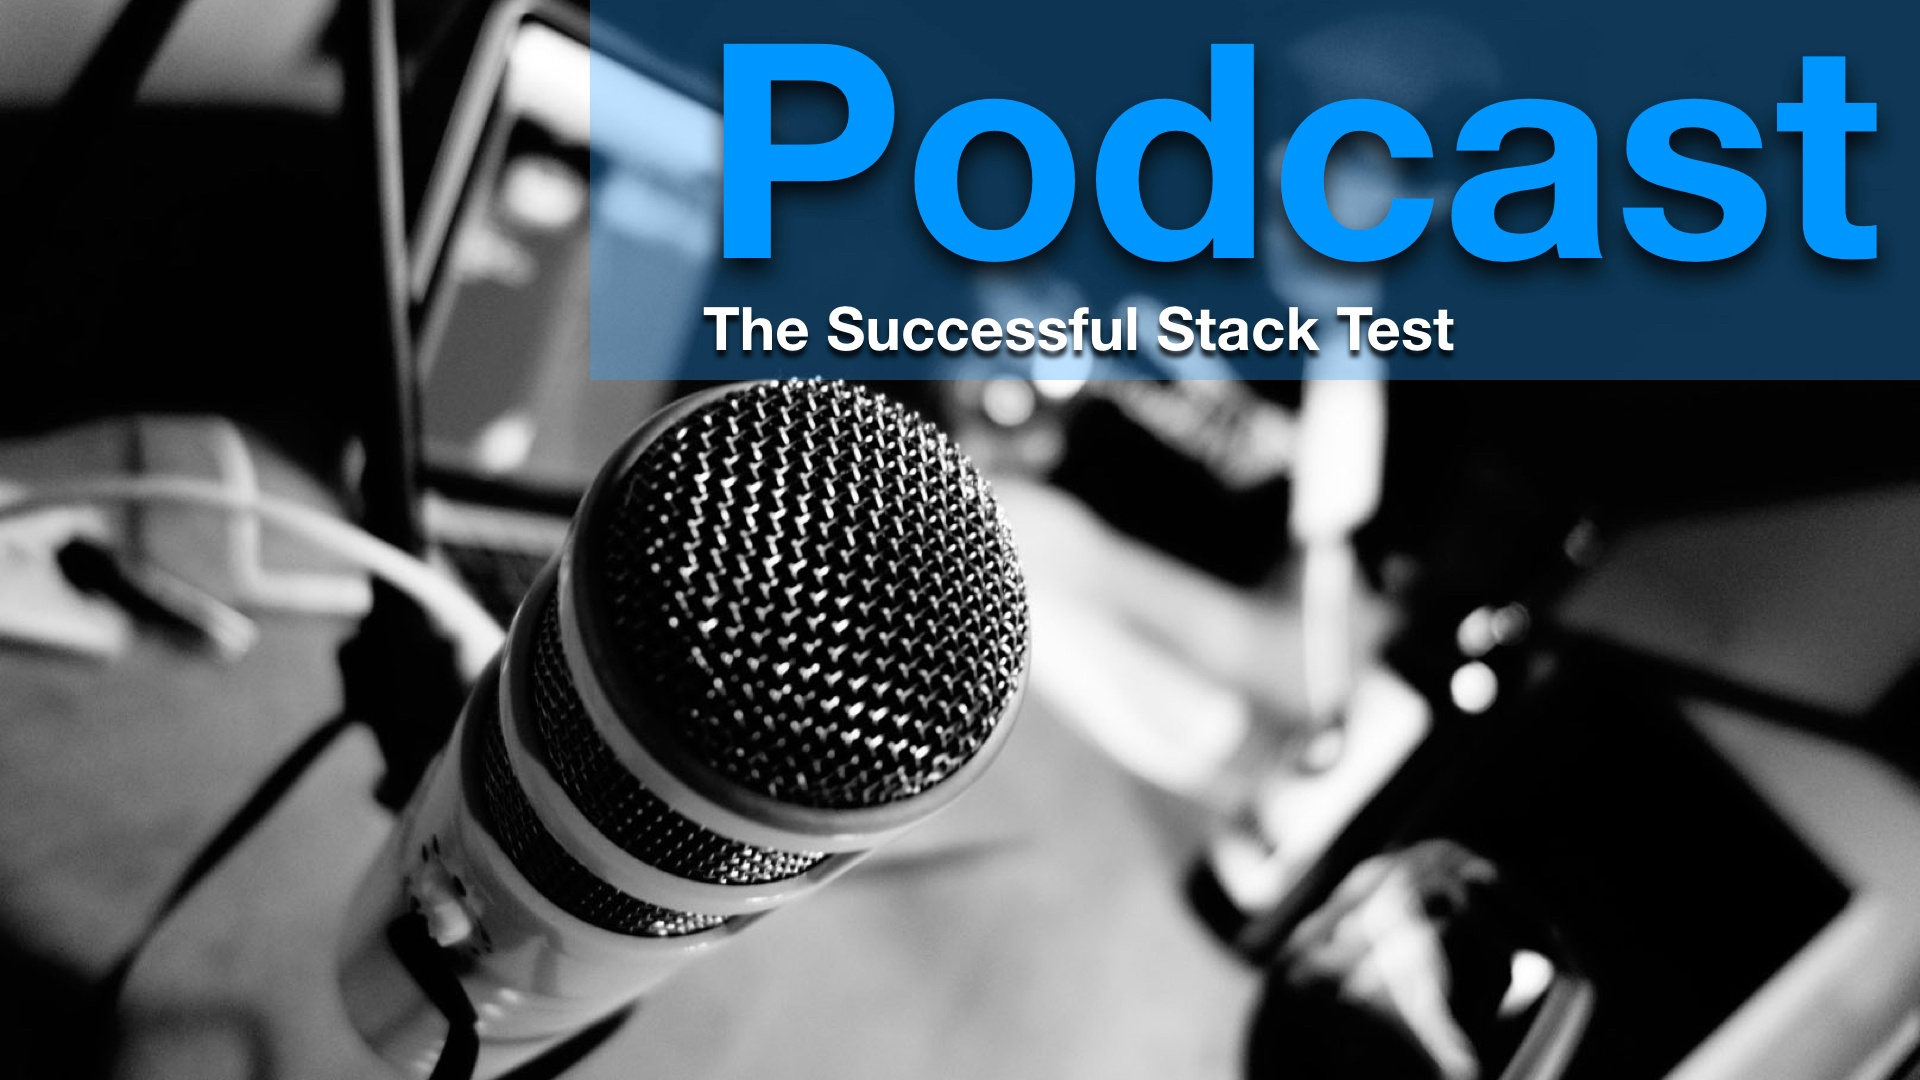 Jim Guenthoer: The Successful Stack Test